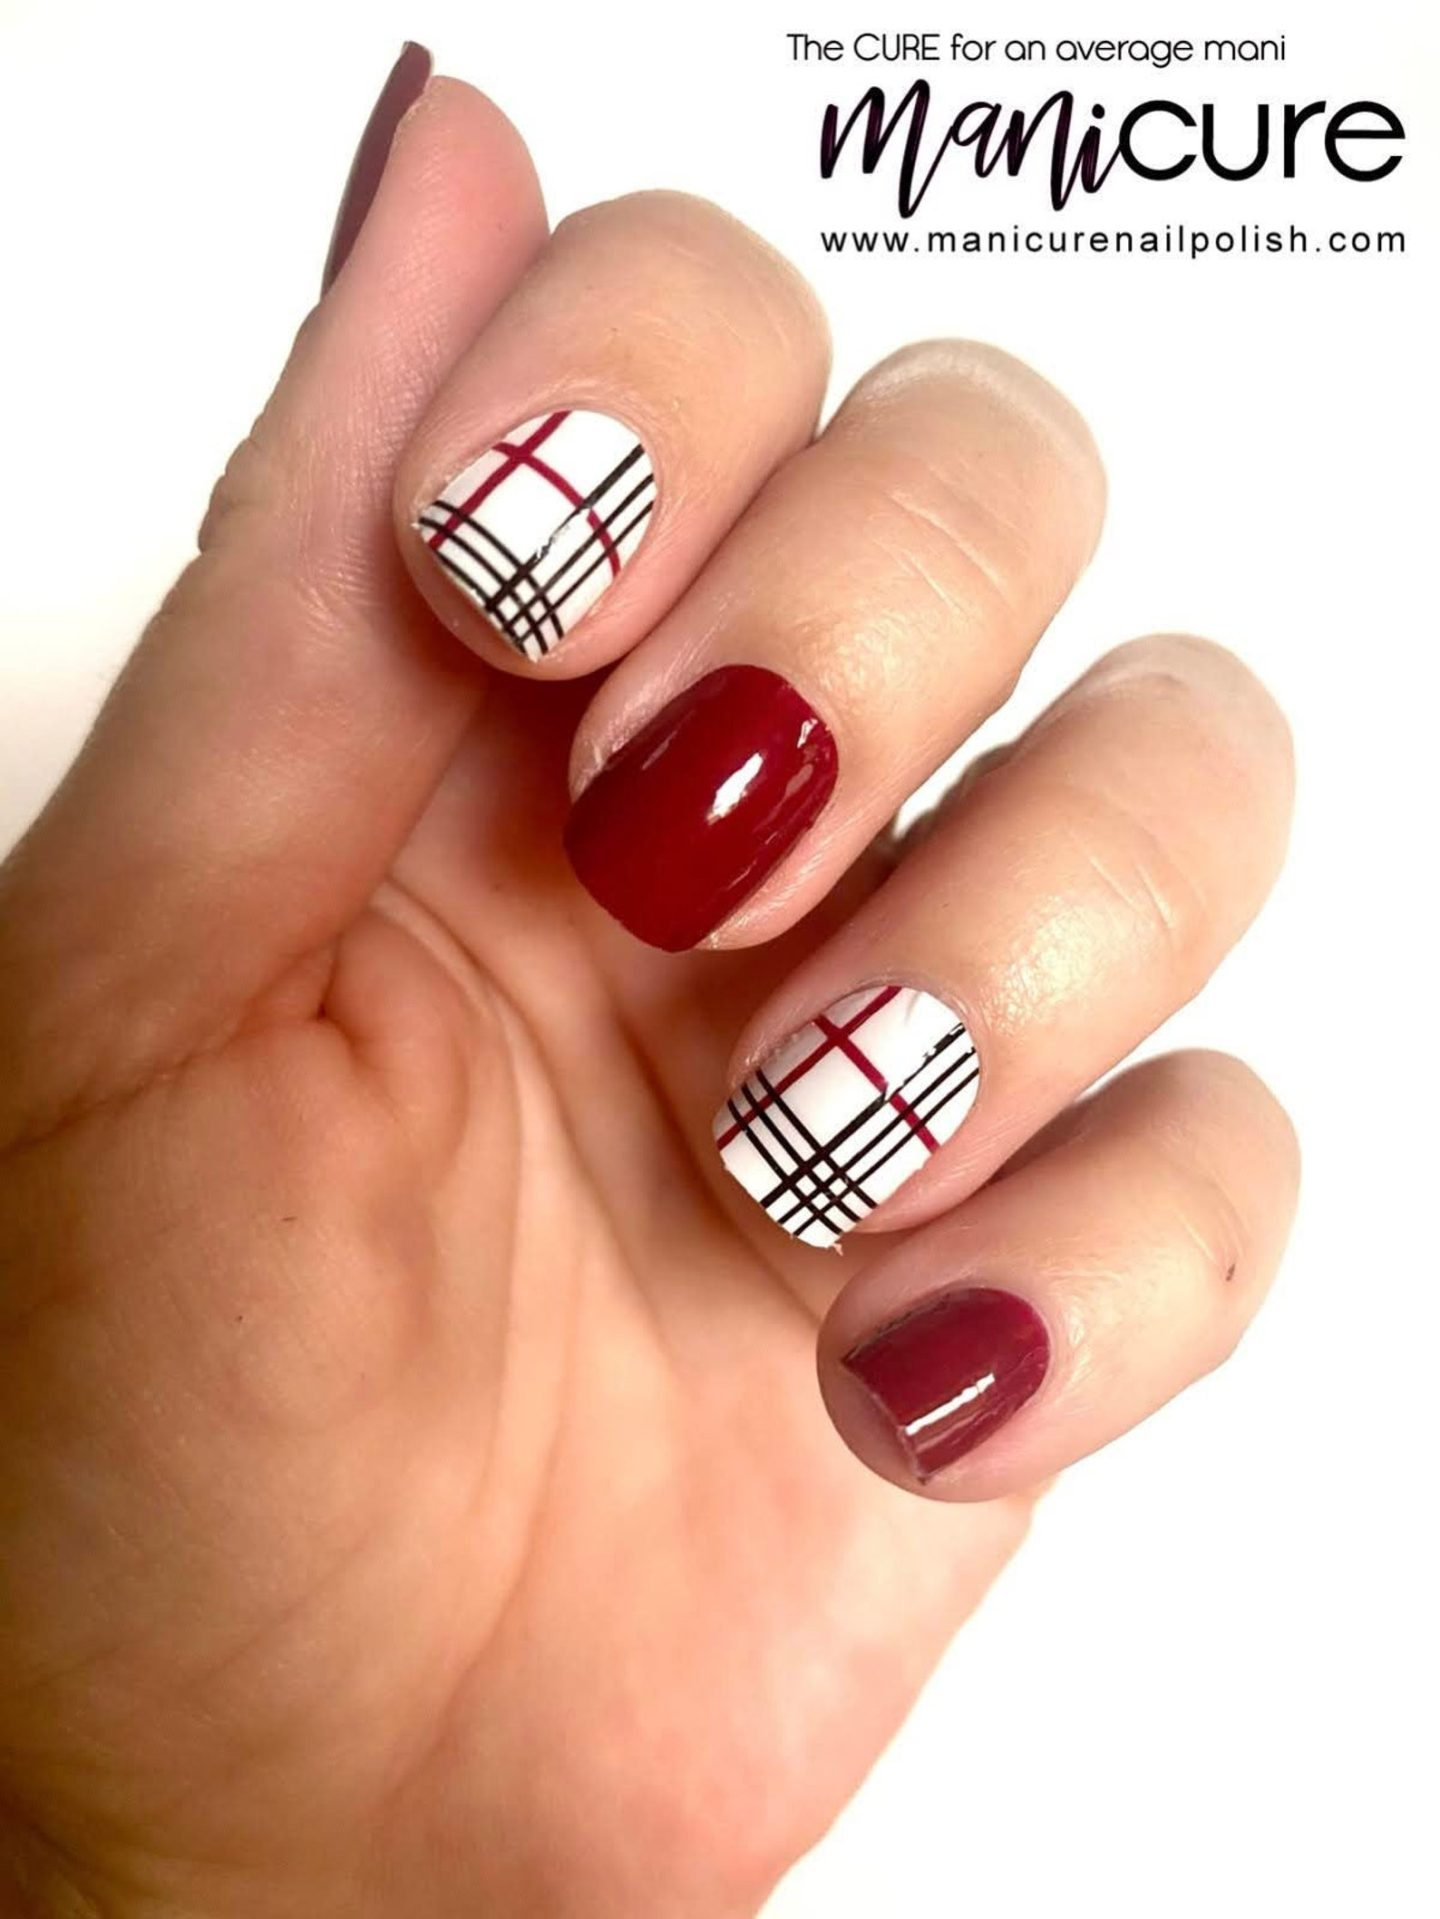 Cute short tartan nails with red and white